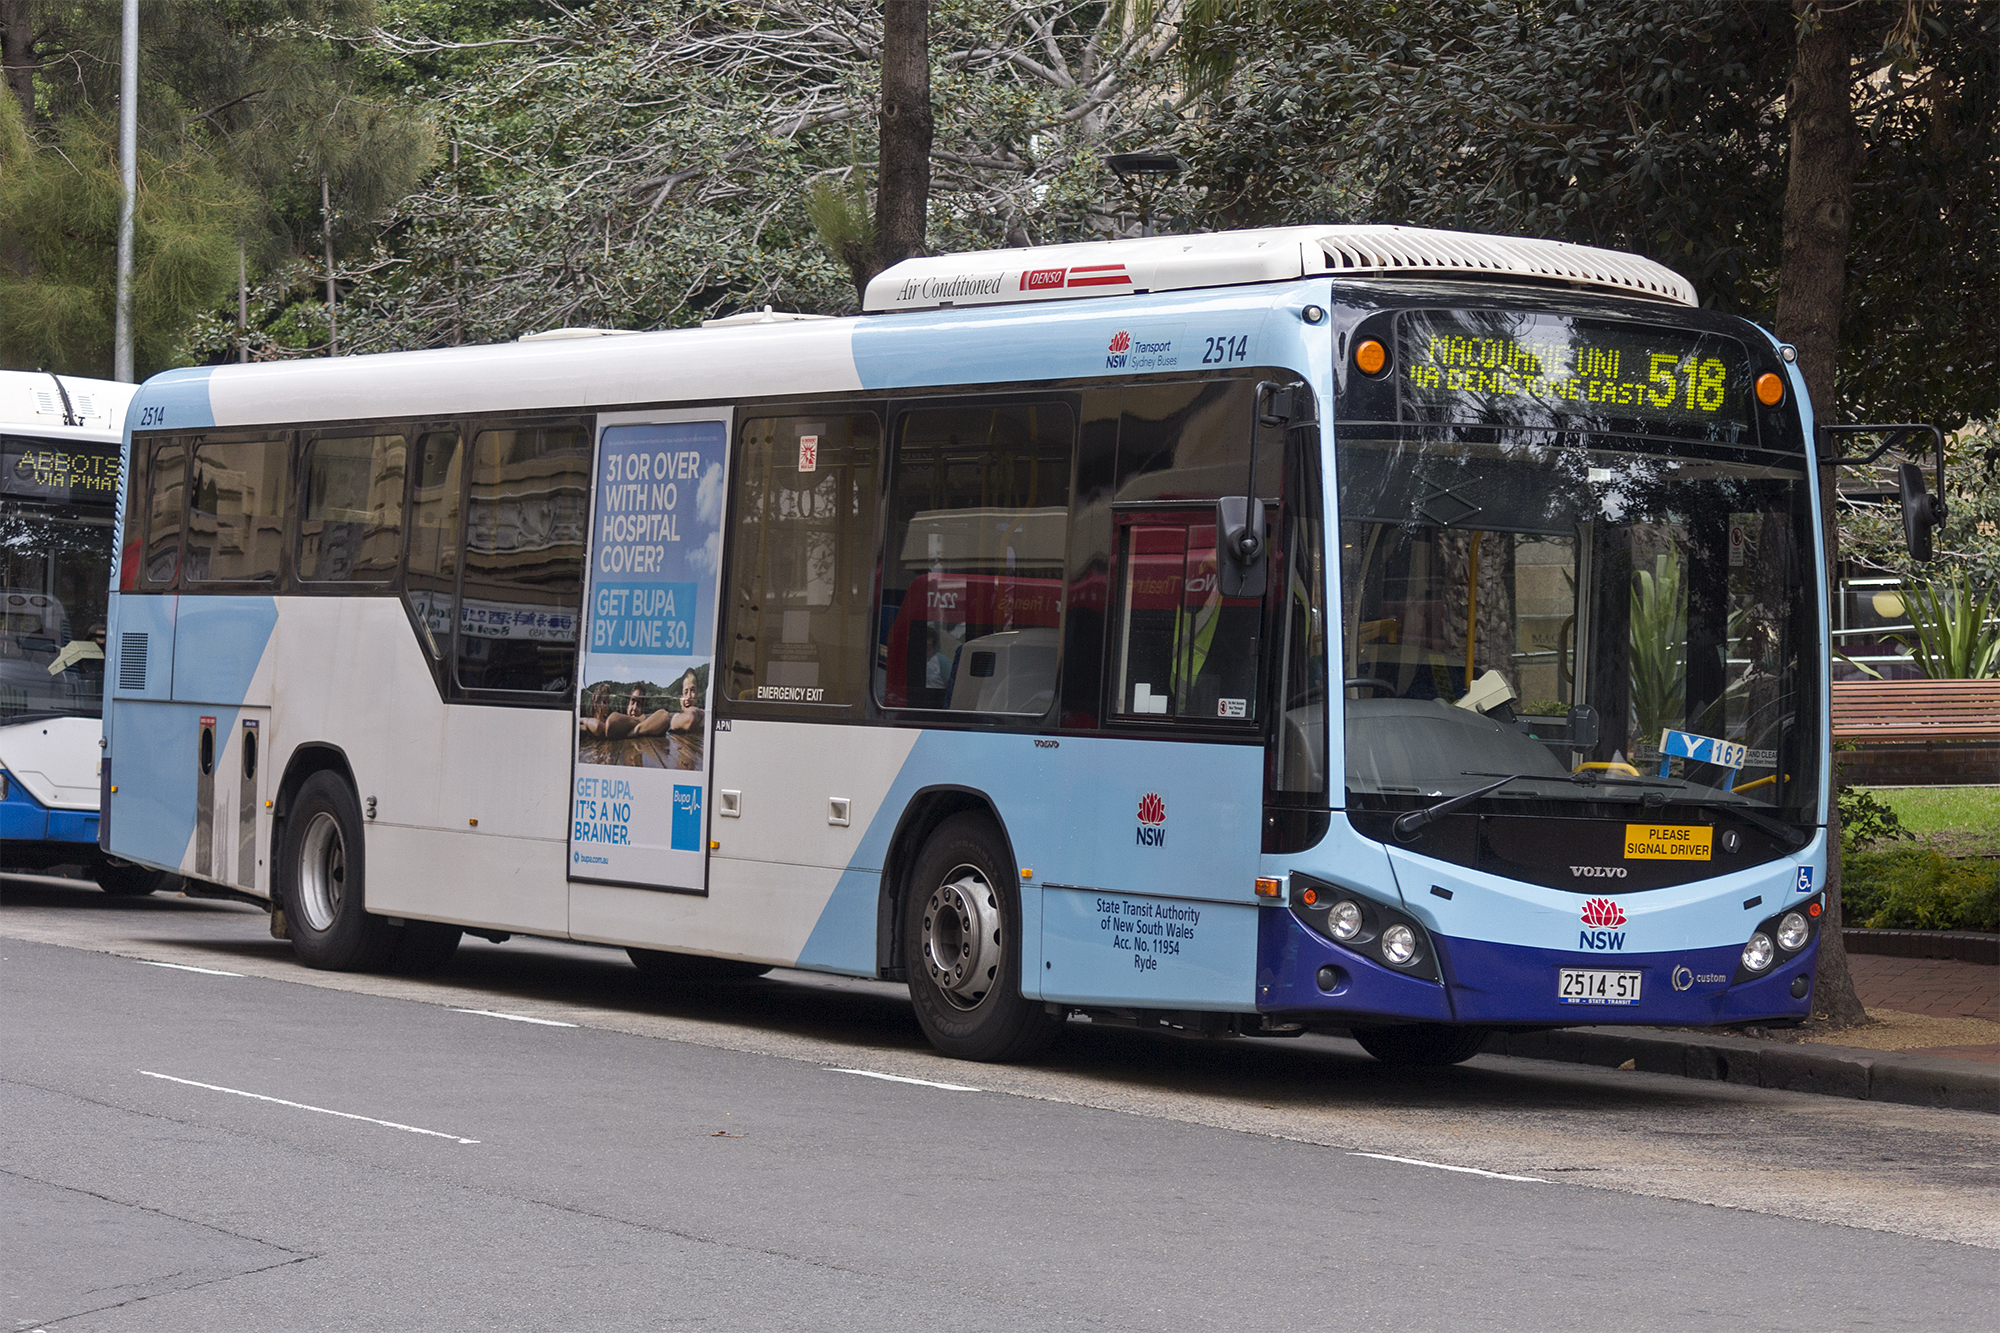 File:Transport NSW liveried (2514 ST), operated by Sydney Buses, Custom